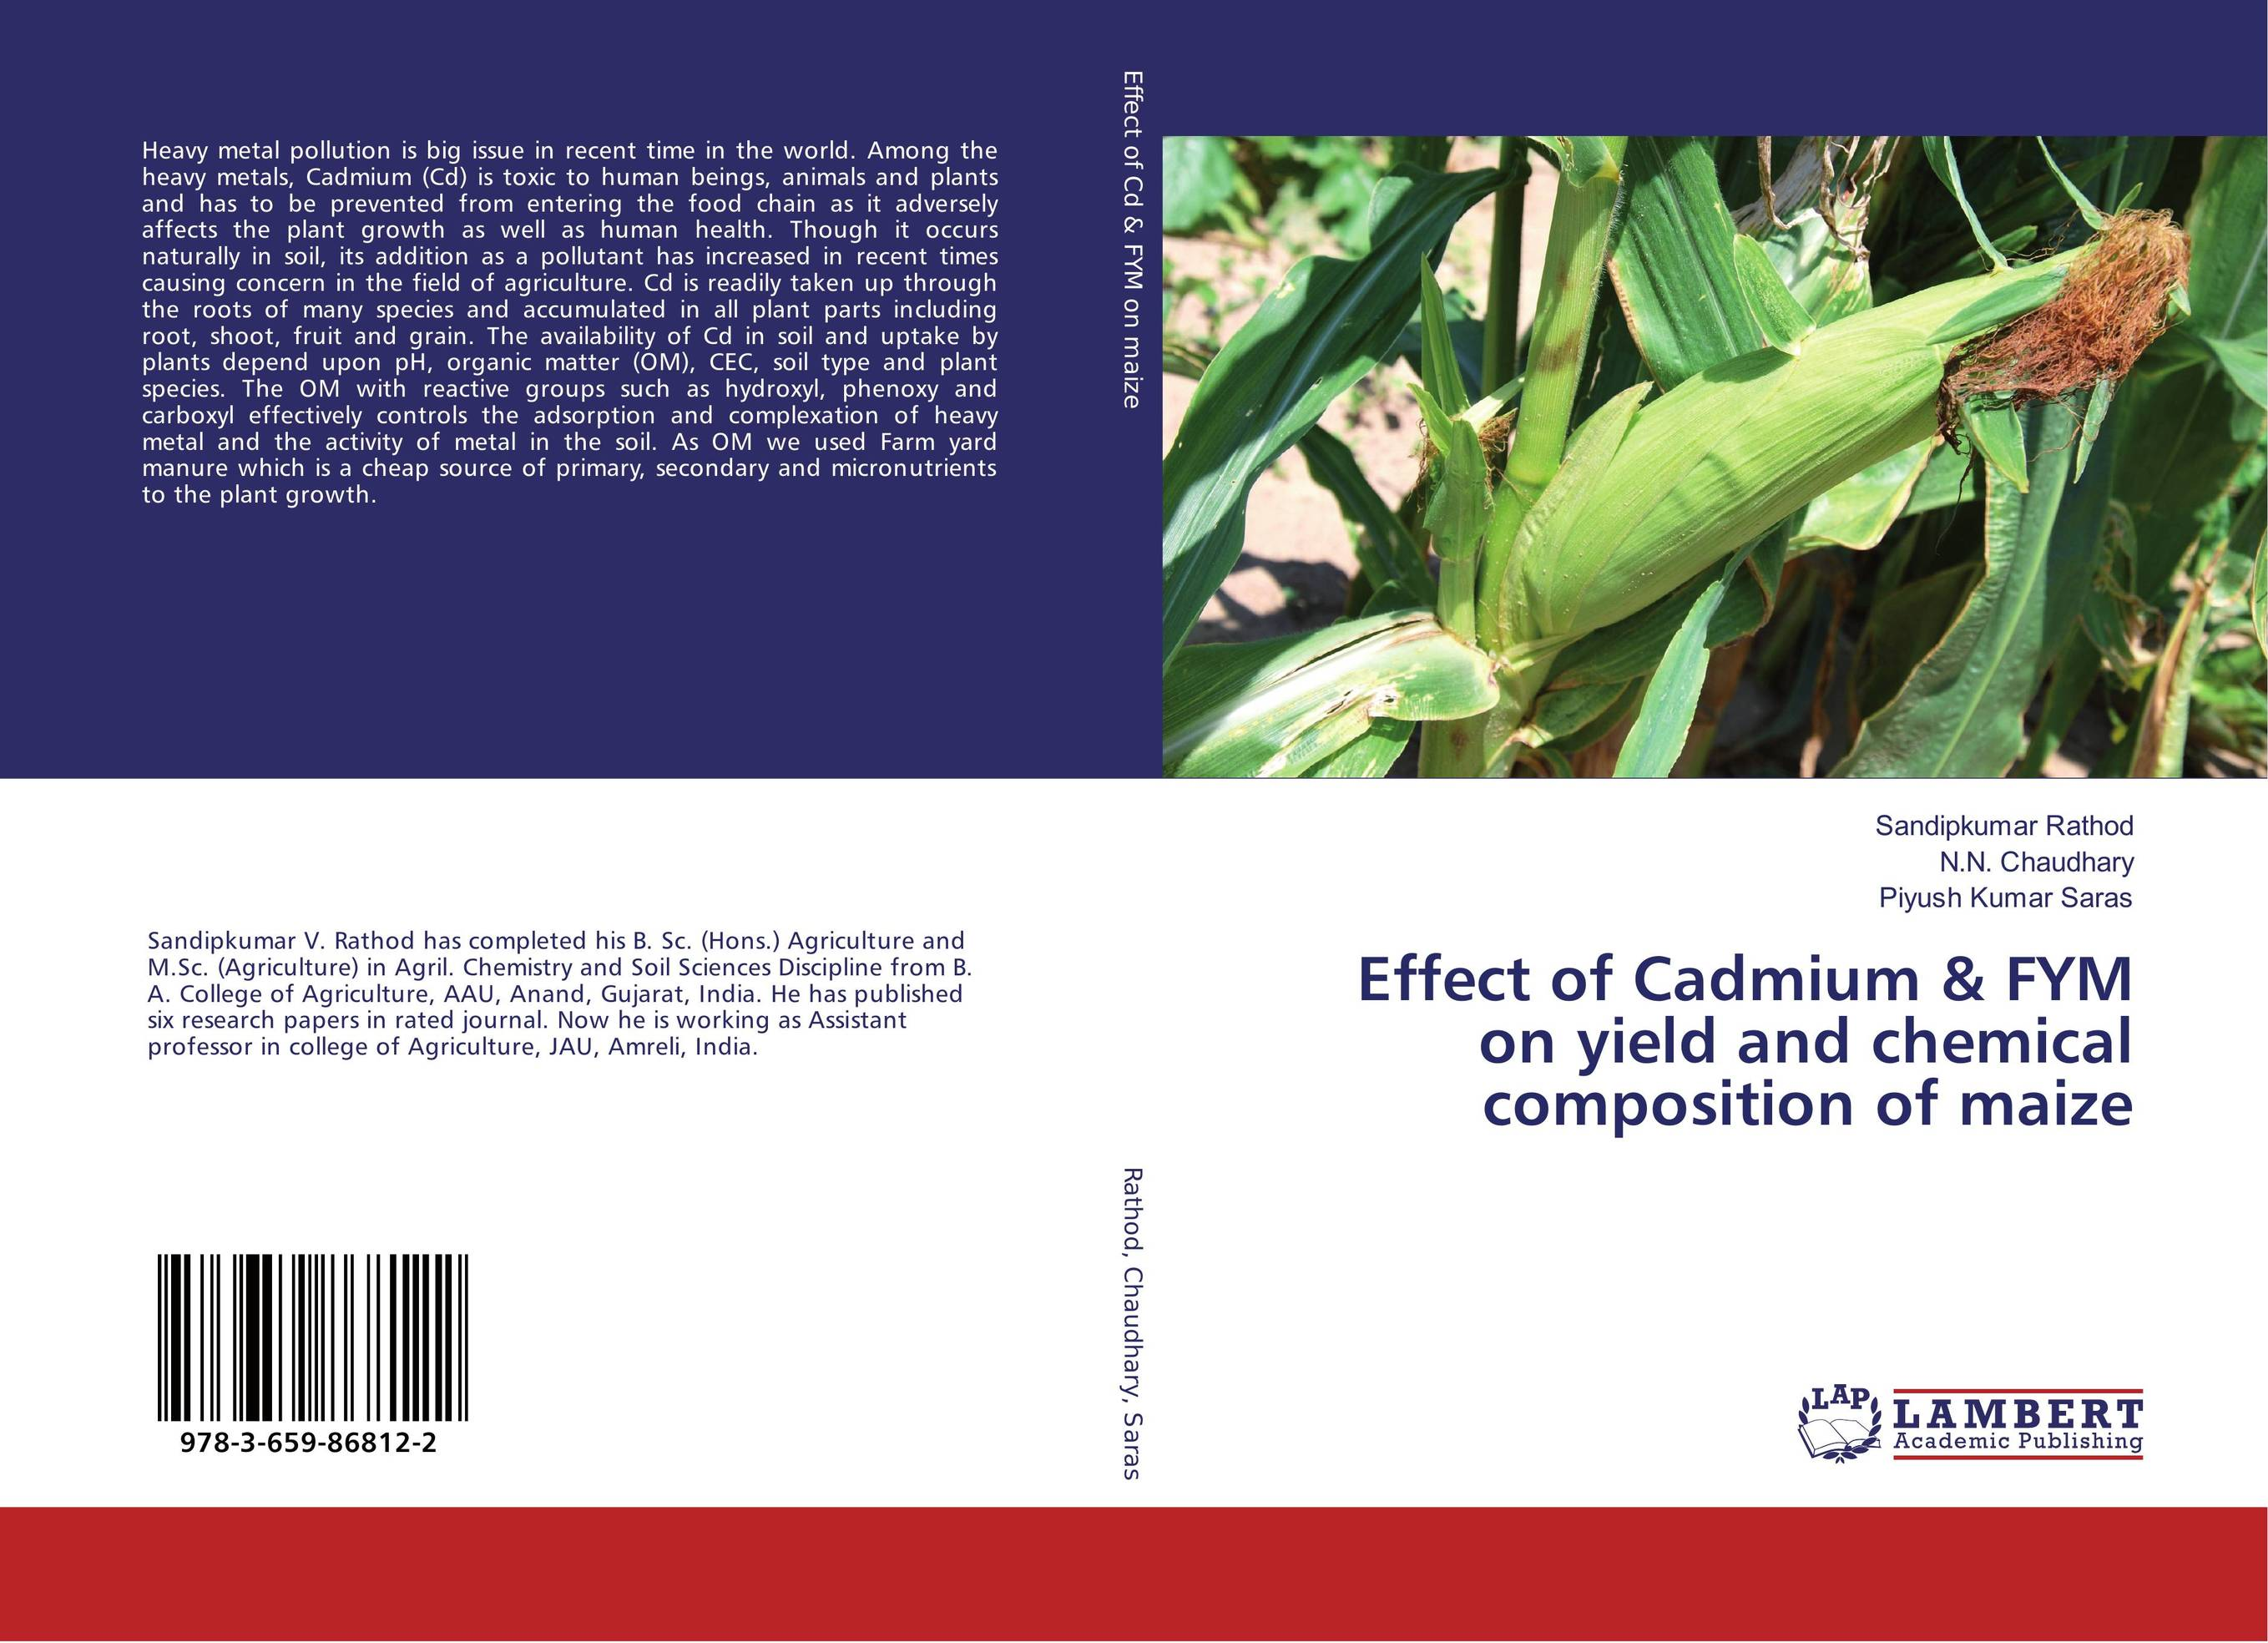 Effect of Cadmium & FYM on yield and chemical composition of maize marwan a ibrahim effect of heavy metals on haematological and testicular functions